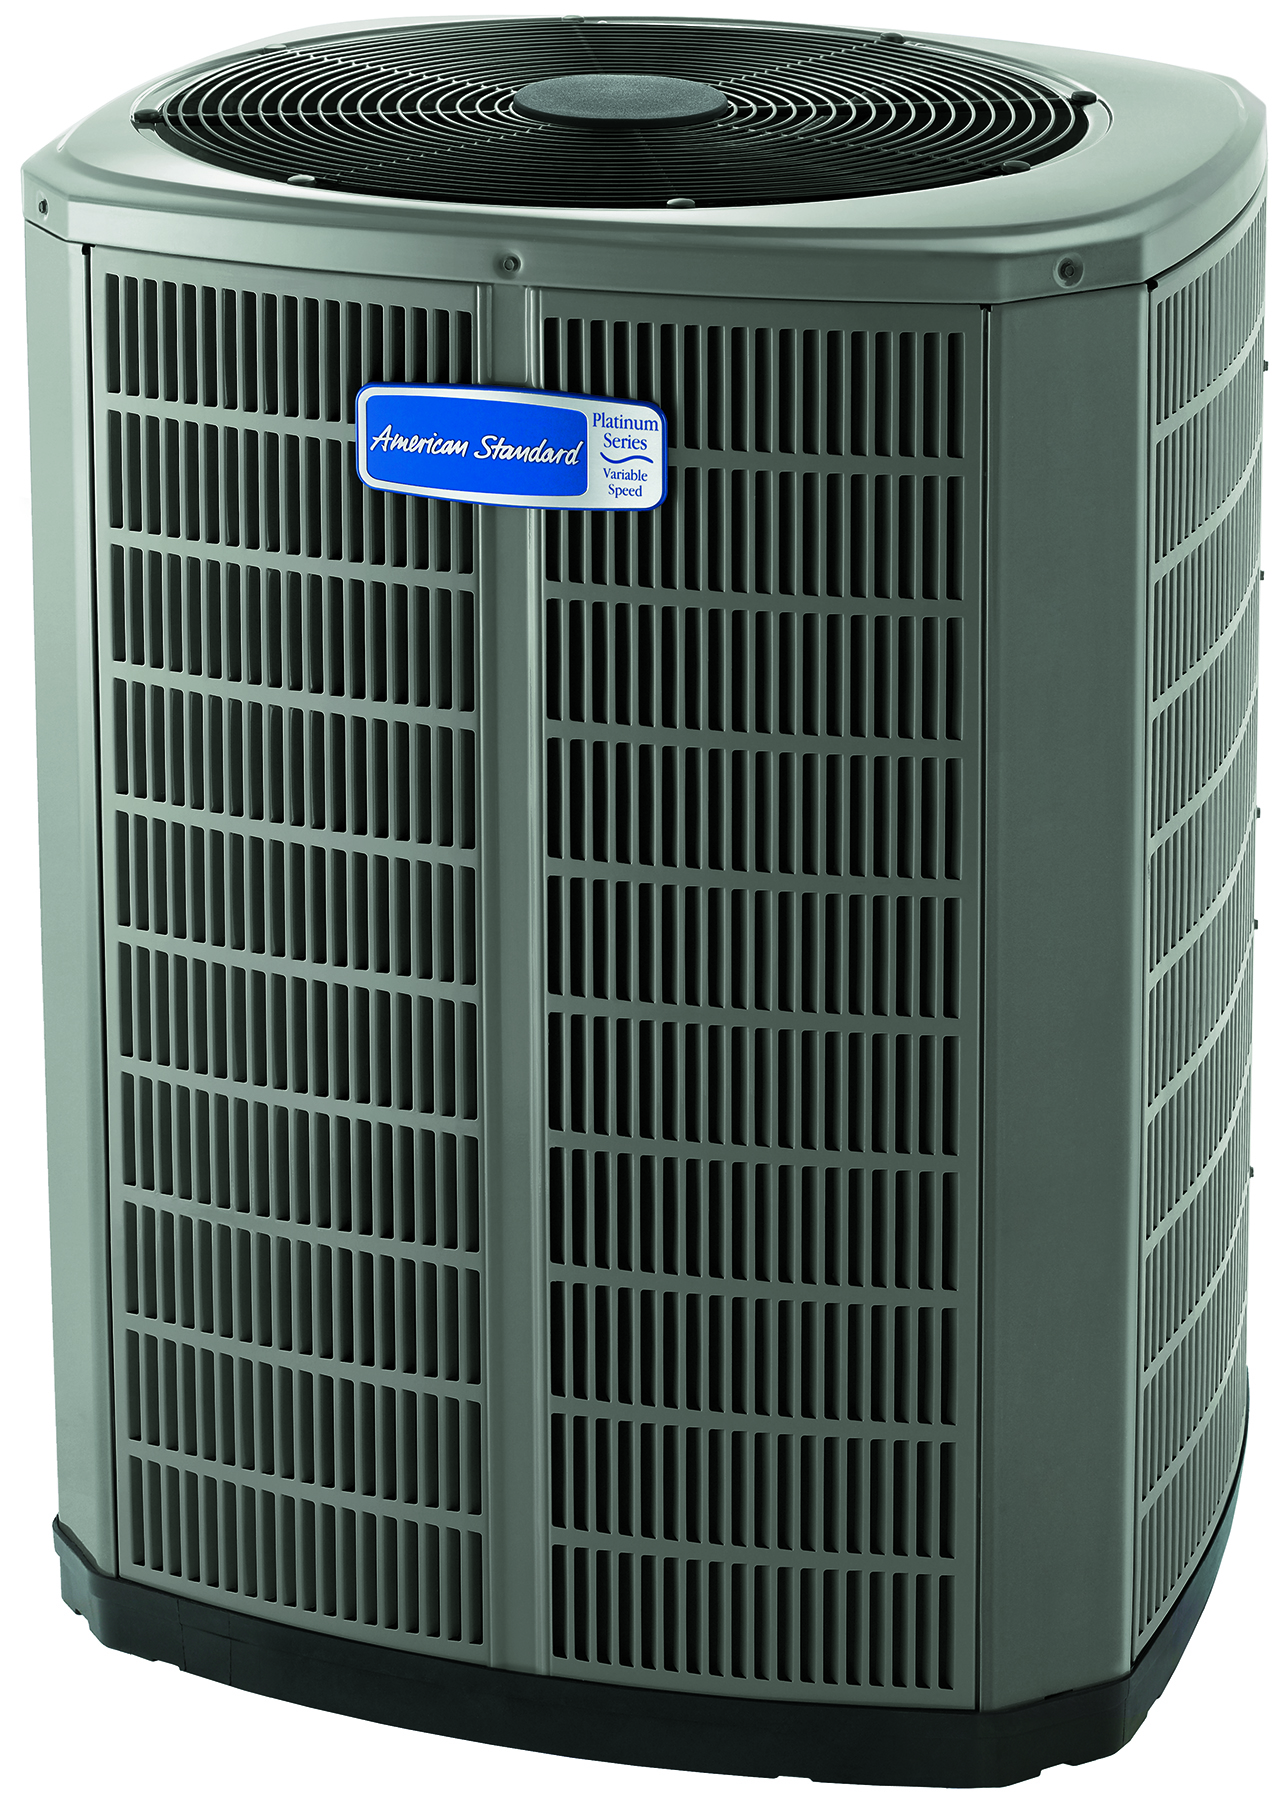 Design Journal Adex Awards Heating Amp Air Conditioning